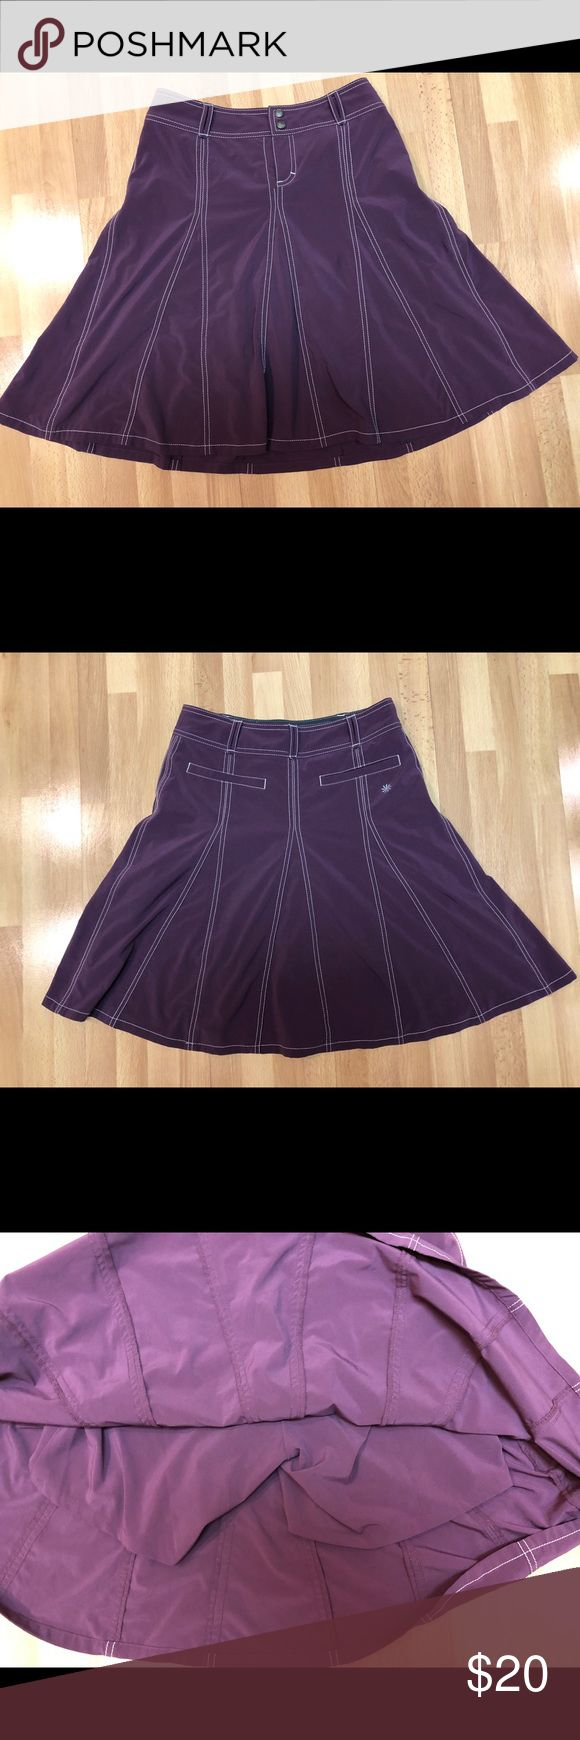 """Athleta Plum Whatever Skort - Tall EUC.  The moisture wicking and quick drying Featherweight Stretch polyester/spandex fabric is lightweight and slightly stretchy. The semi-fitted, A-line skirt has faux pleats and drapes nicely without being bulky. Built-in shorts are made from the same fabric, and allow you to be as adventurous as you want on your travels without worrying about showing off too much.  Length: 21"""". Athleta Skirts"""